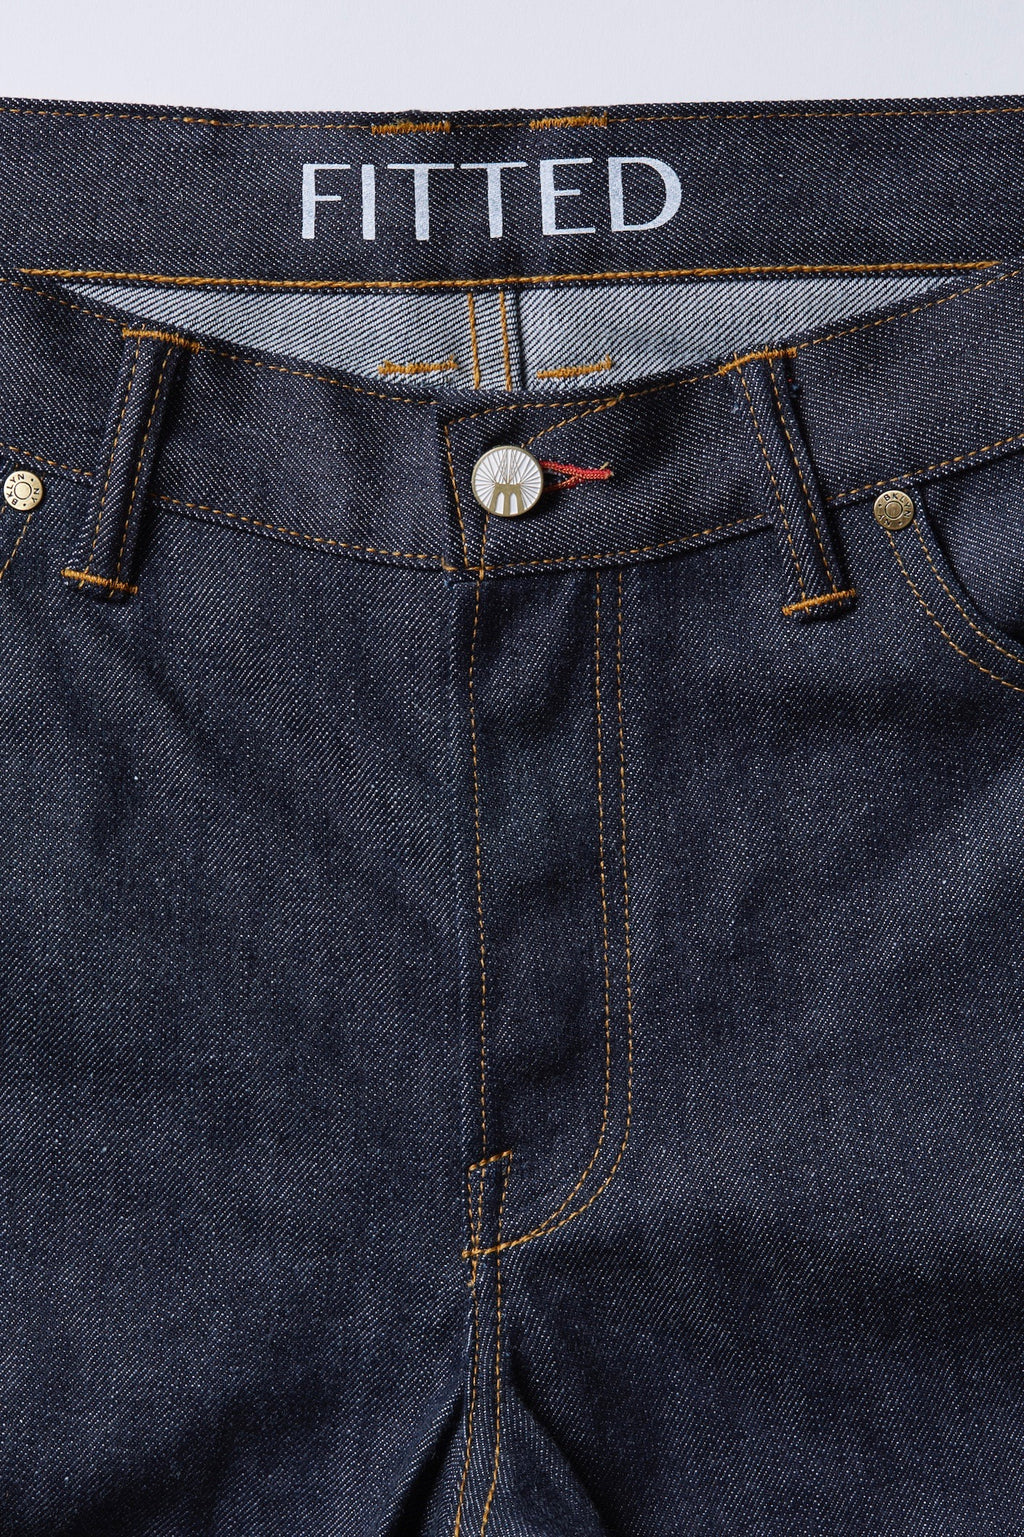 J11s Summer Selvedge - FITTED Underground